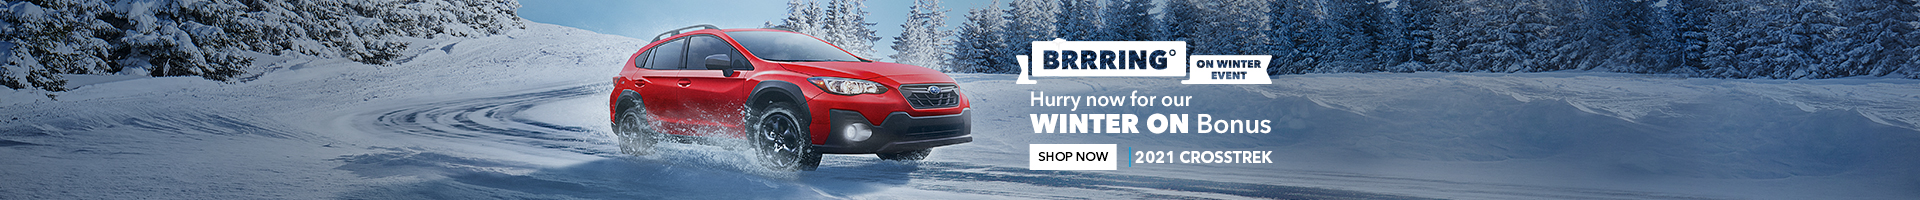 Brrring On Winter Event on now at Peterborough Subaru